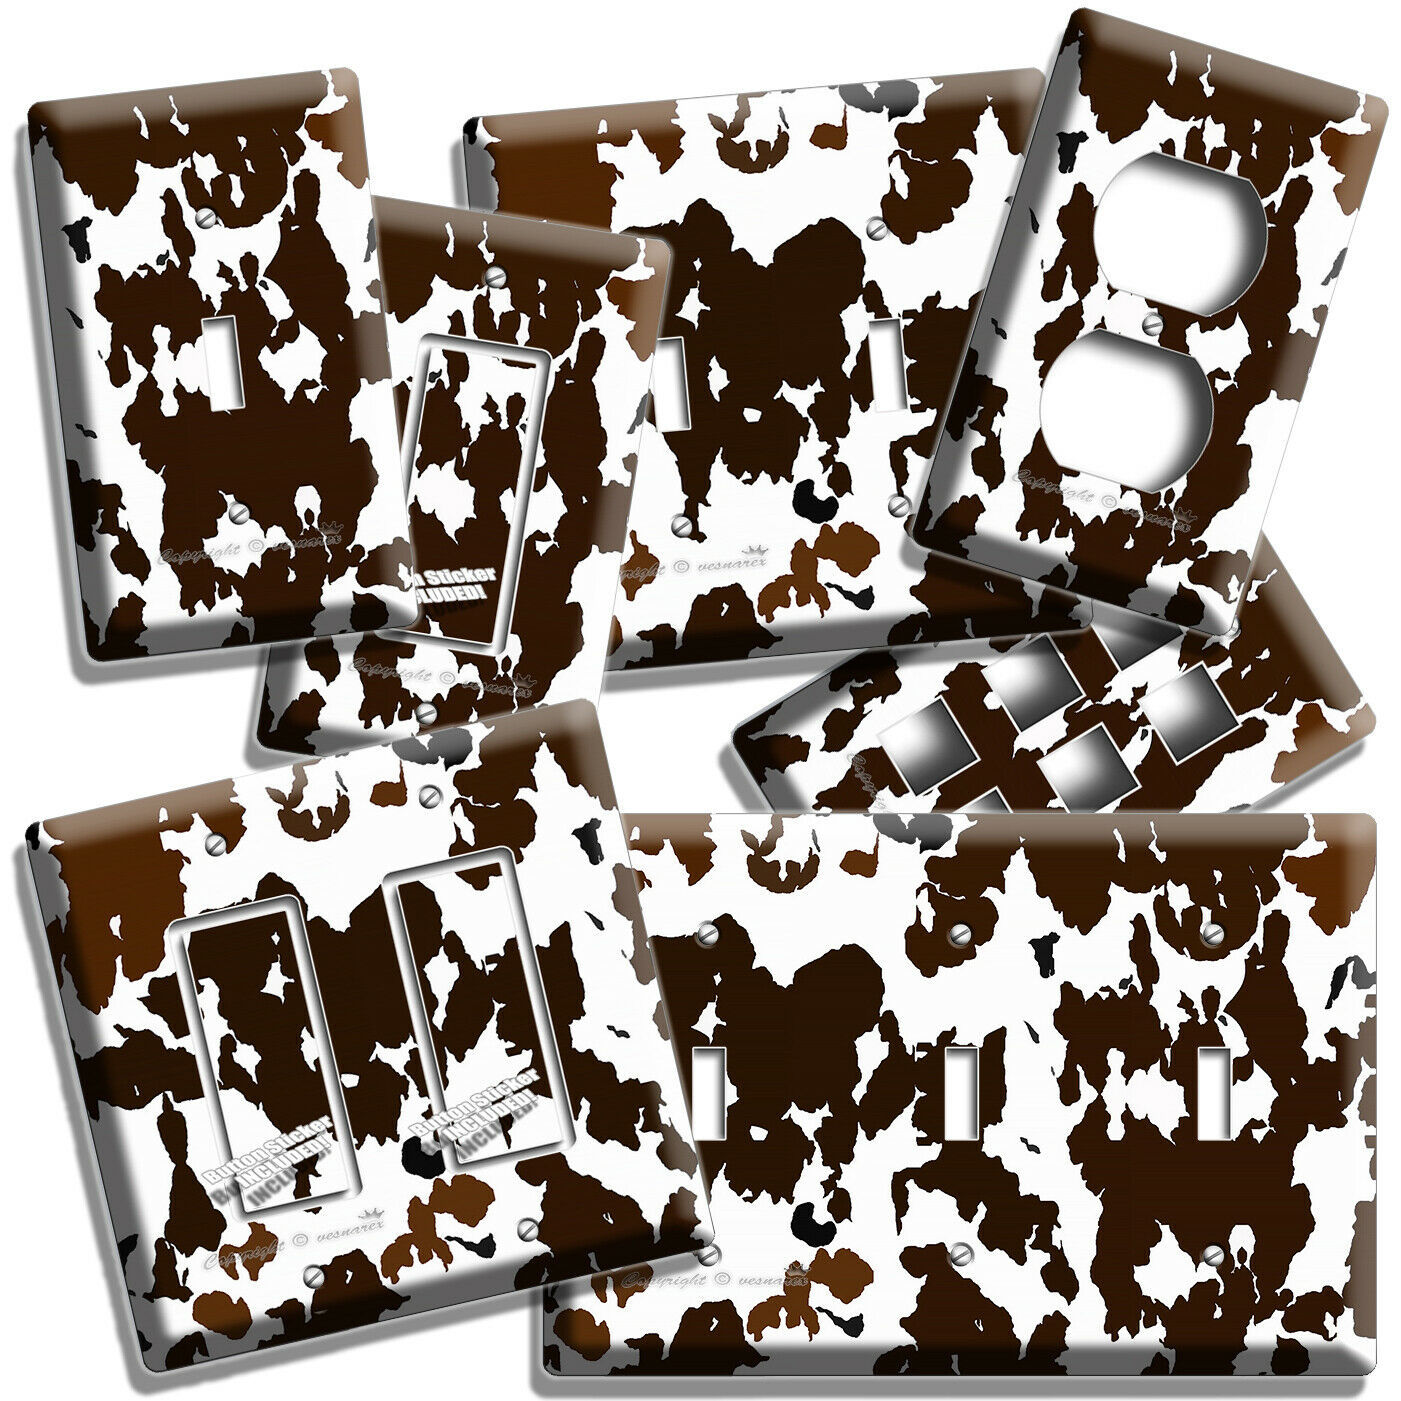 COW HIDE SKIN PRINT LIGHT SWITCH OUTLET WALL PLATE COUNTRY STYLE ROOM HOME DECOR